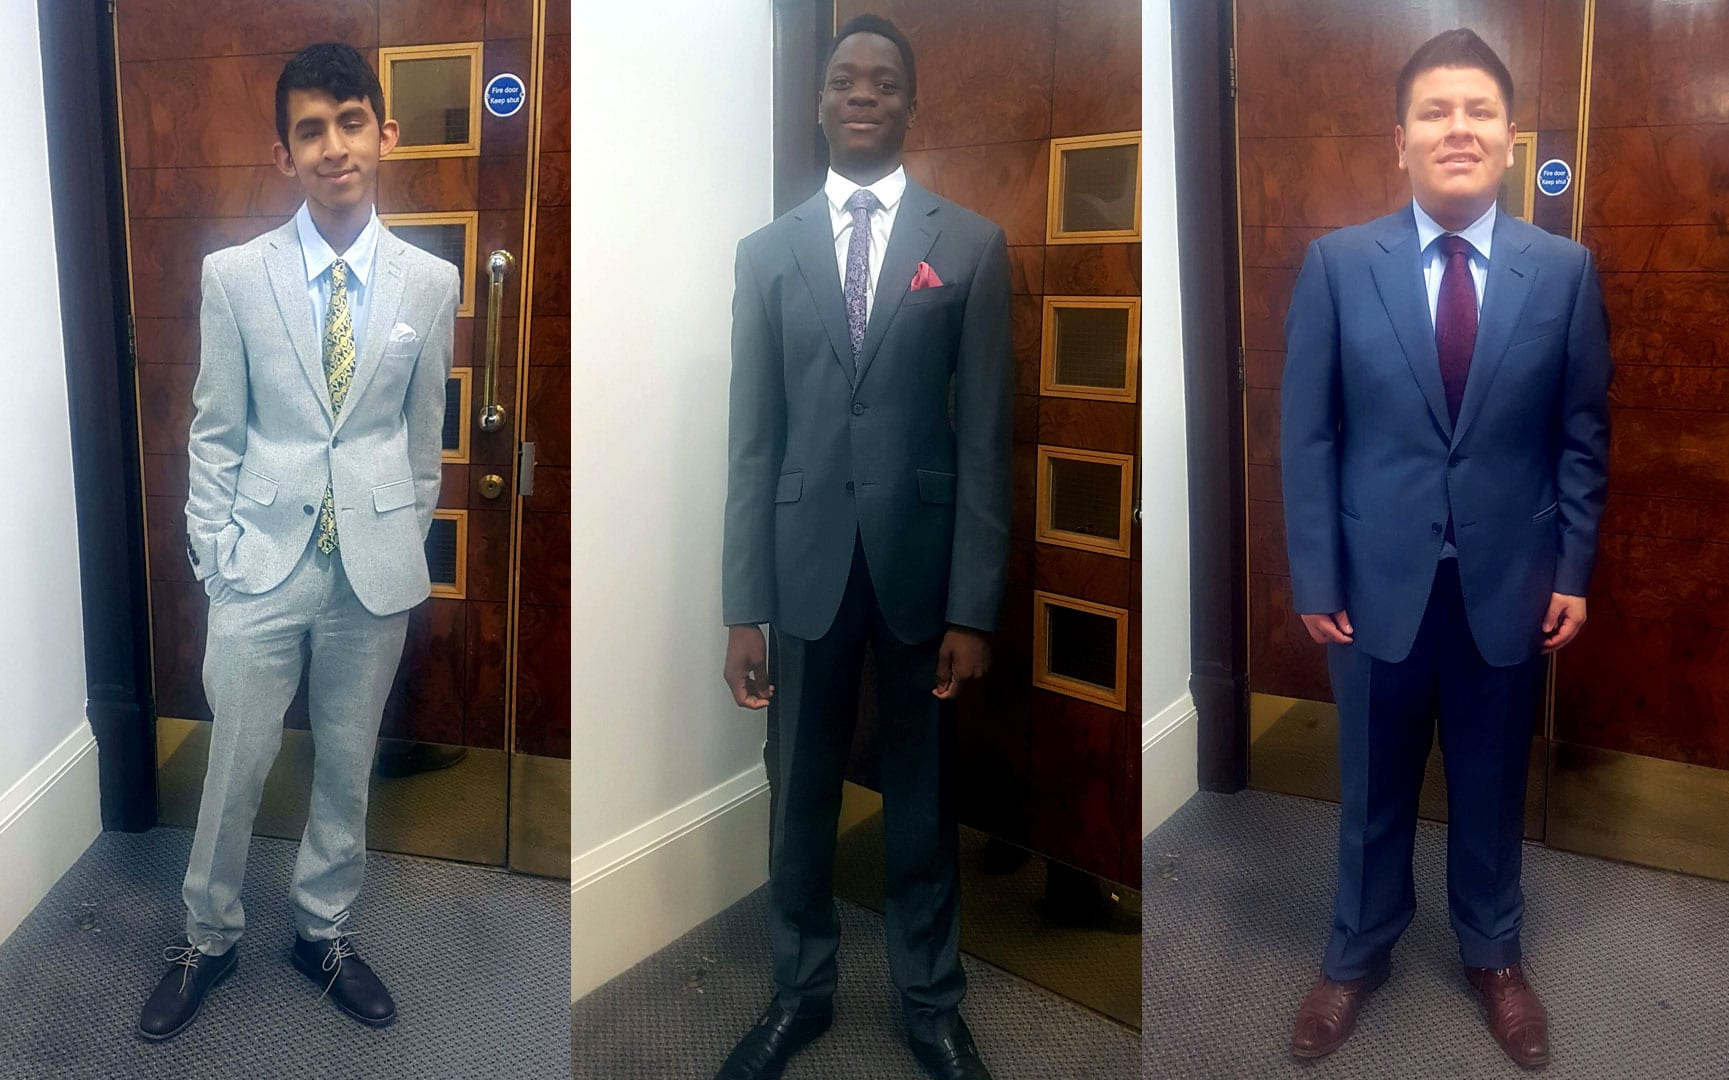 Students Get Suited and Booted